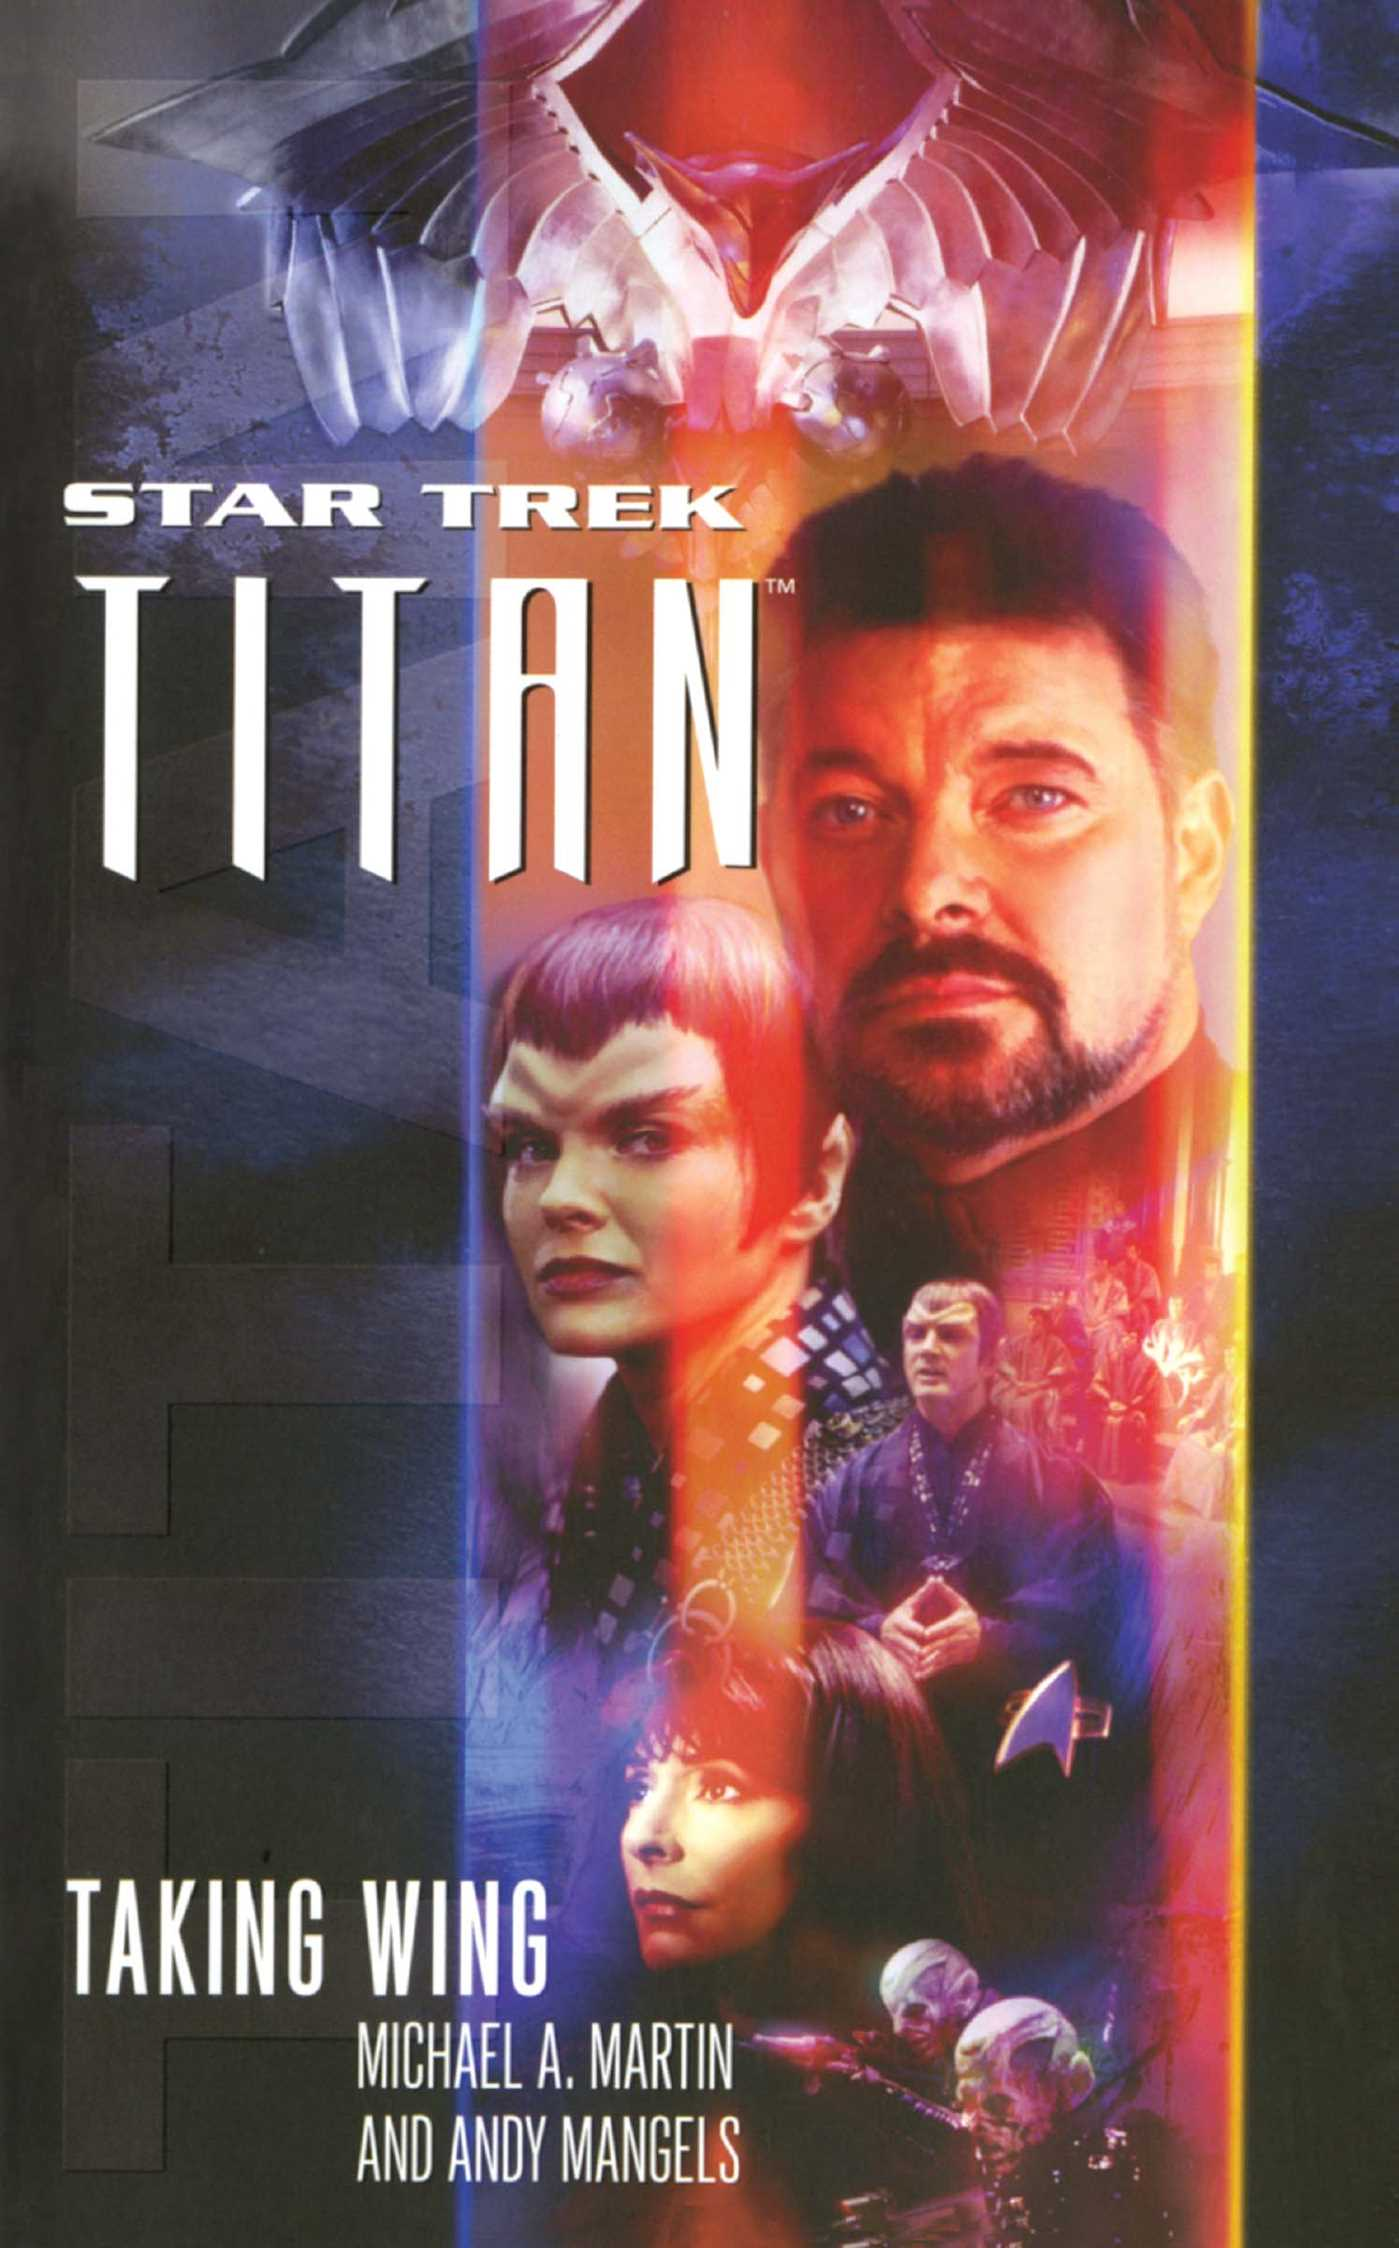 Star trek titan 1 taking wing 9781476711058 hr